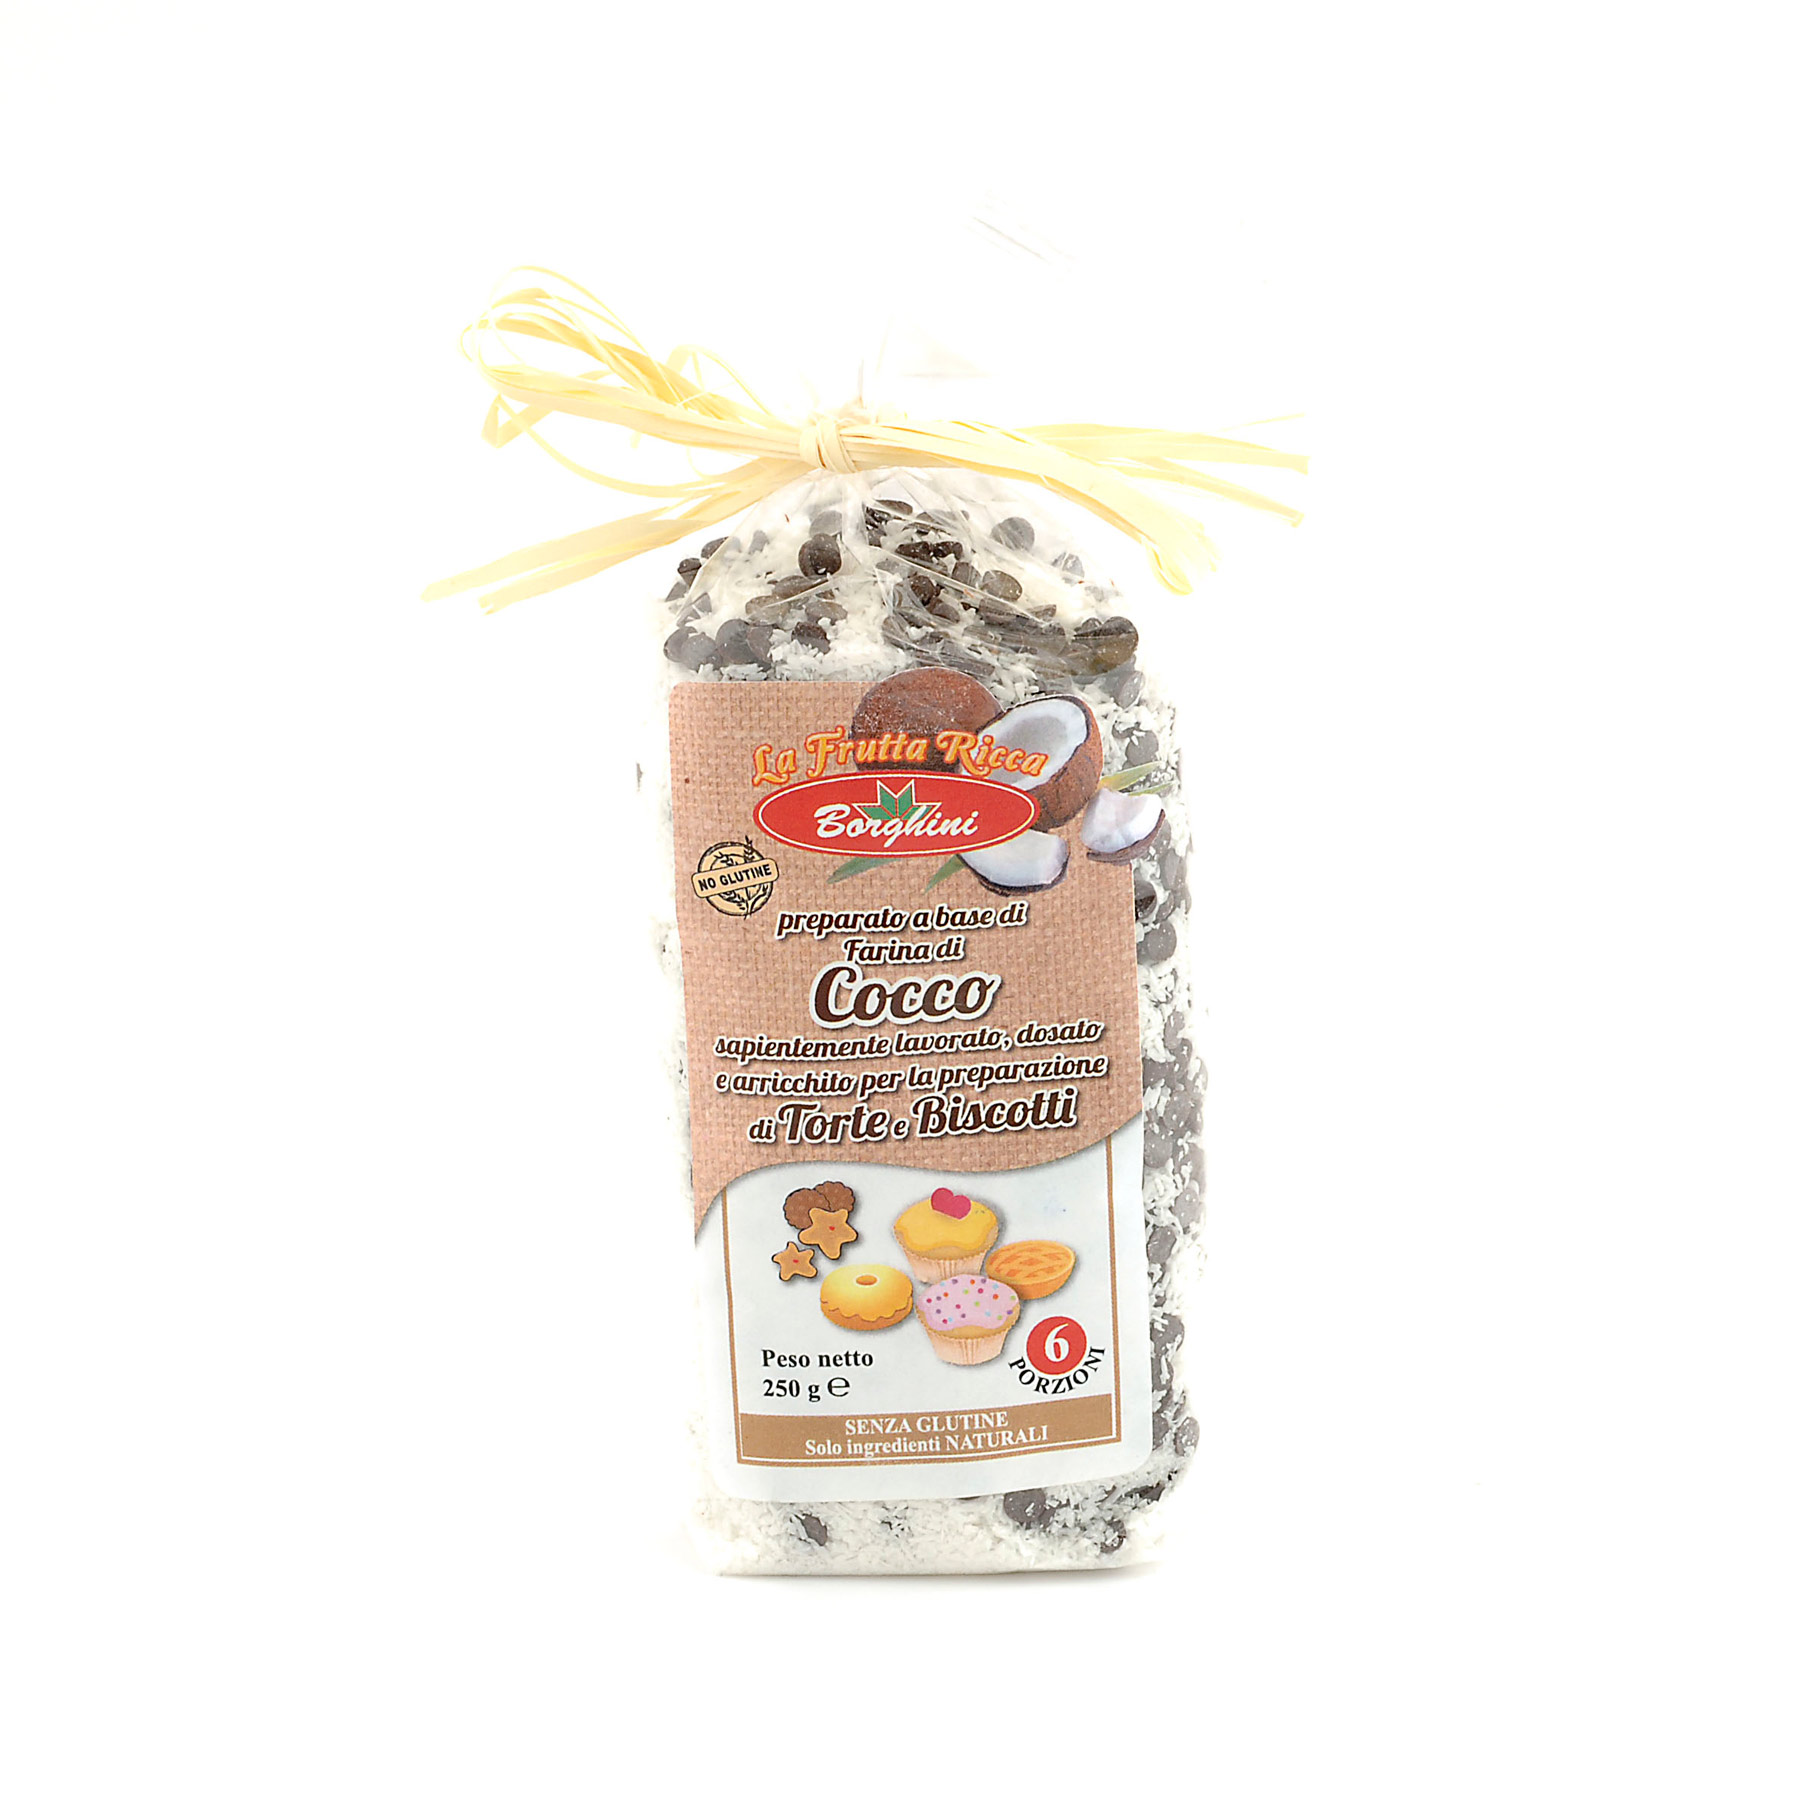 'Cocchini' Coconut Choc Chip Biscuit Mix *Gluten Free* from Borghini